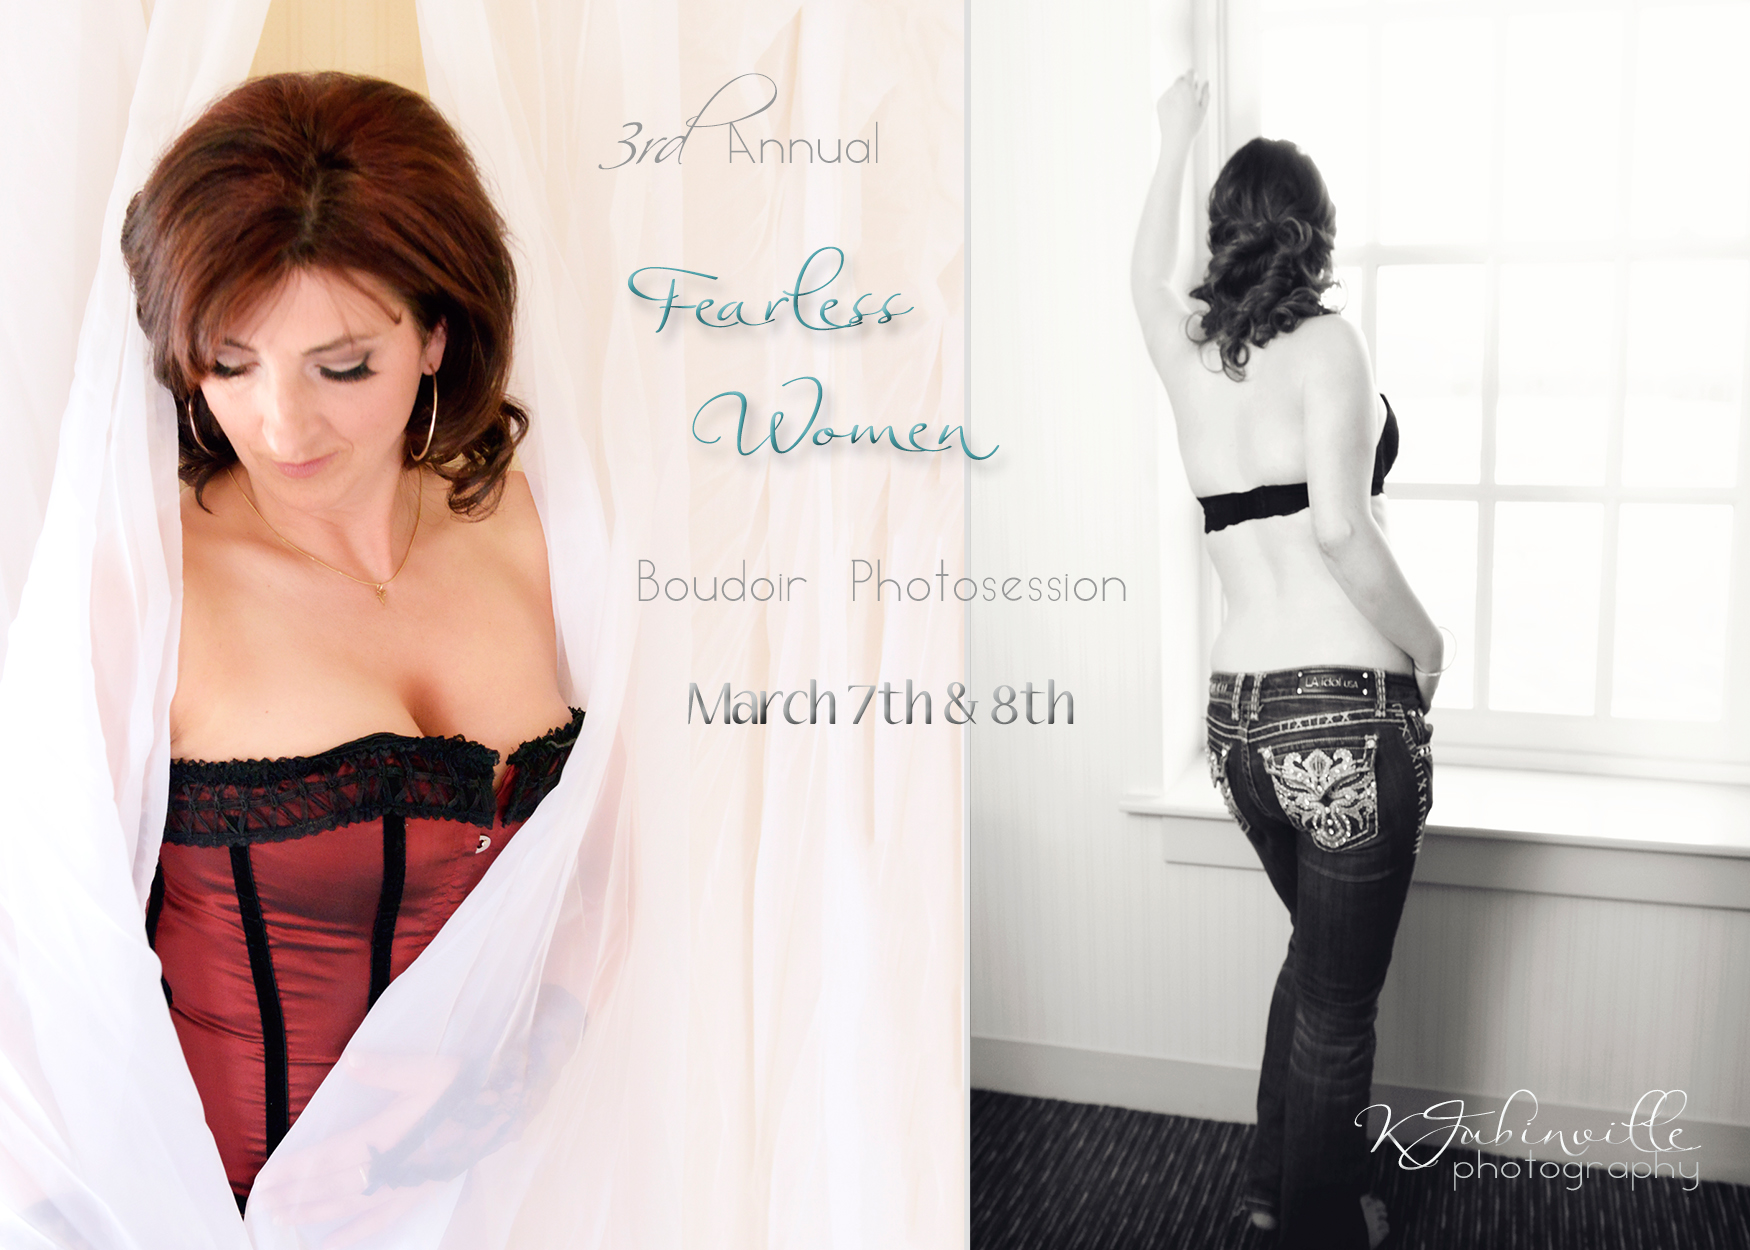 Fearless Woman Boudoir Event